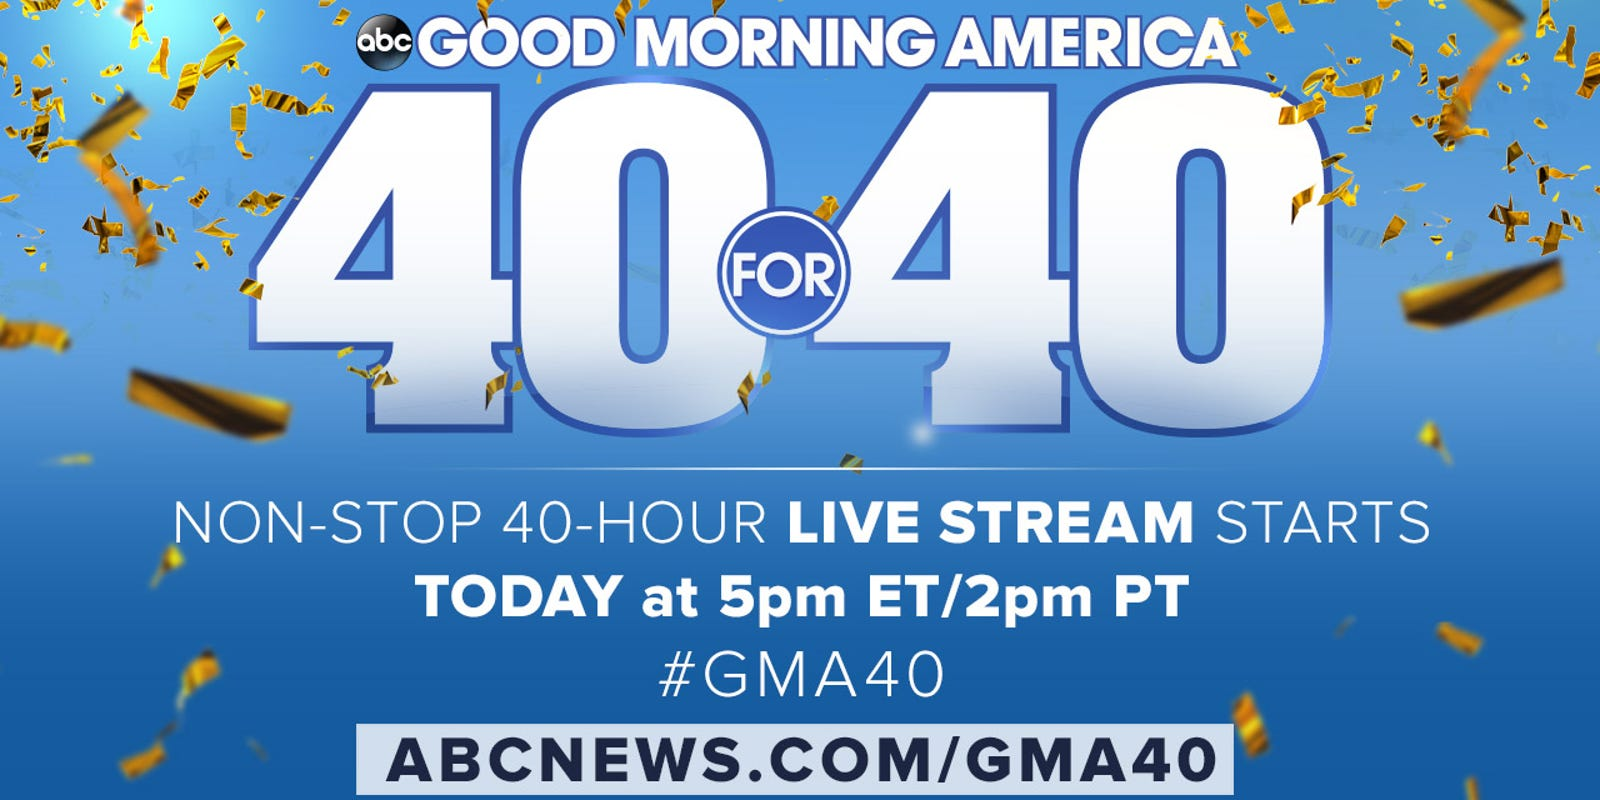 Good Morning America Stories Today : Gma celebrates th anniversary with hour broadcast